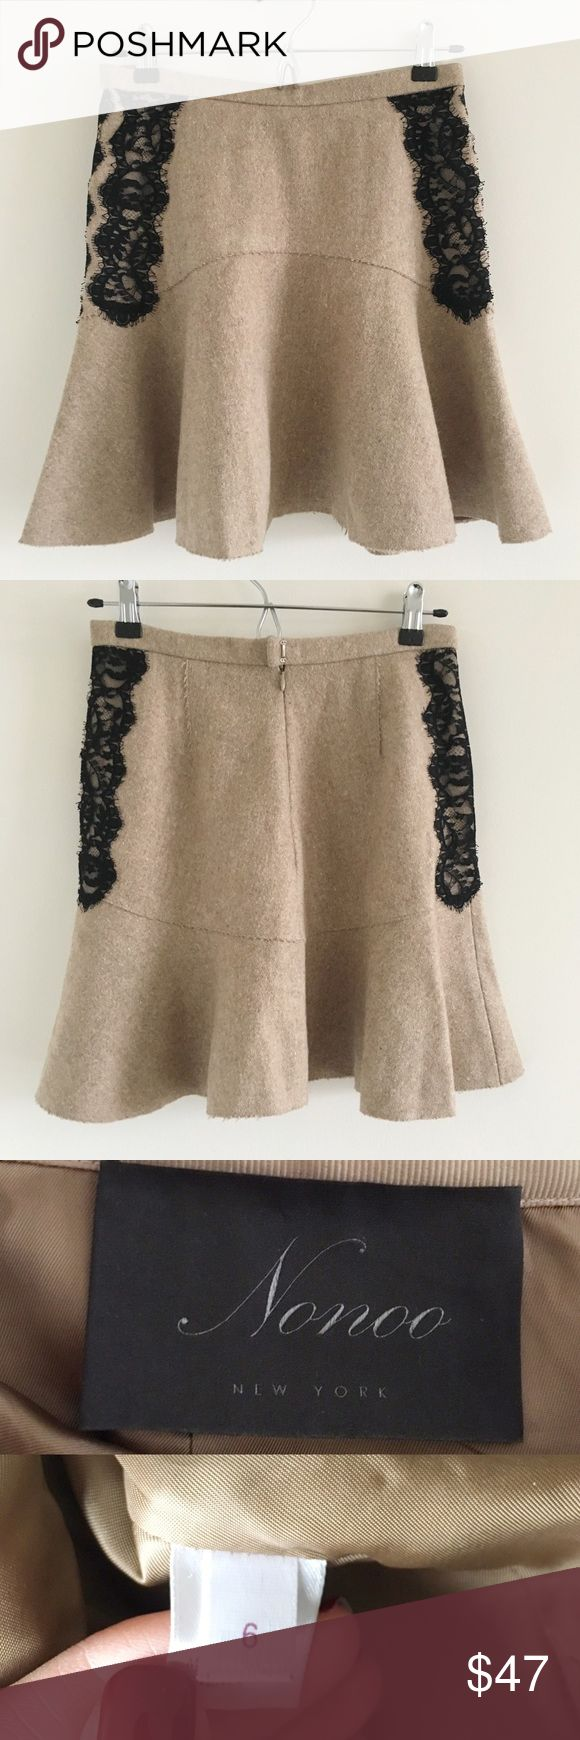 🆕 Misha Nonoo Felted Wool & Lace Mini Skirt Sz 6 A super cute mini skirt in a neutral beige-y camel color perfect for cold weather layering.  Transitions seamlessly from the office to happy hour to date night 💕  Stats (laying flat): Length: approx. 17"